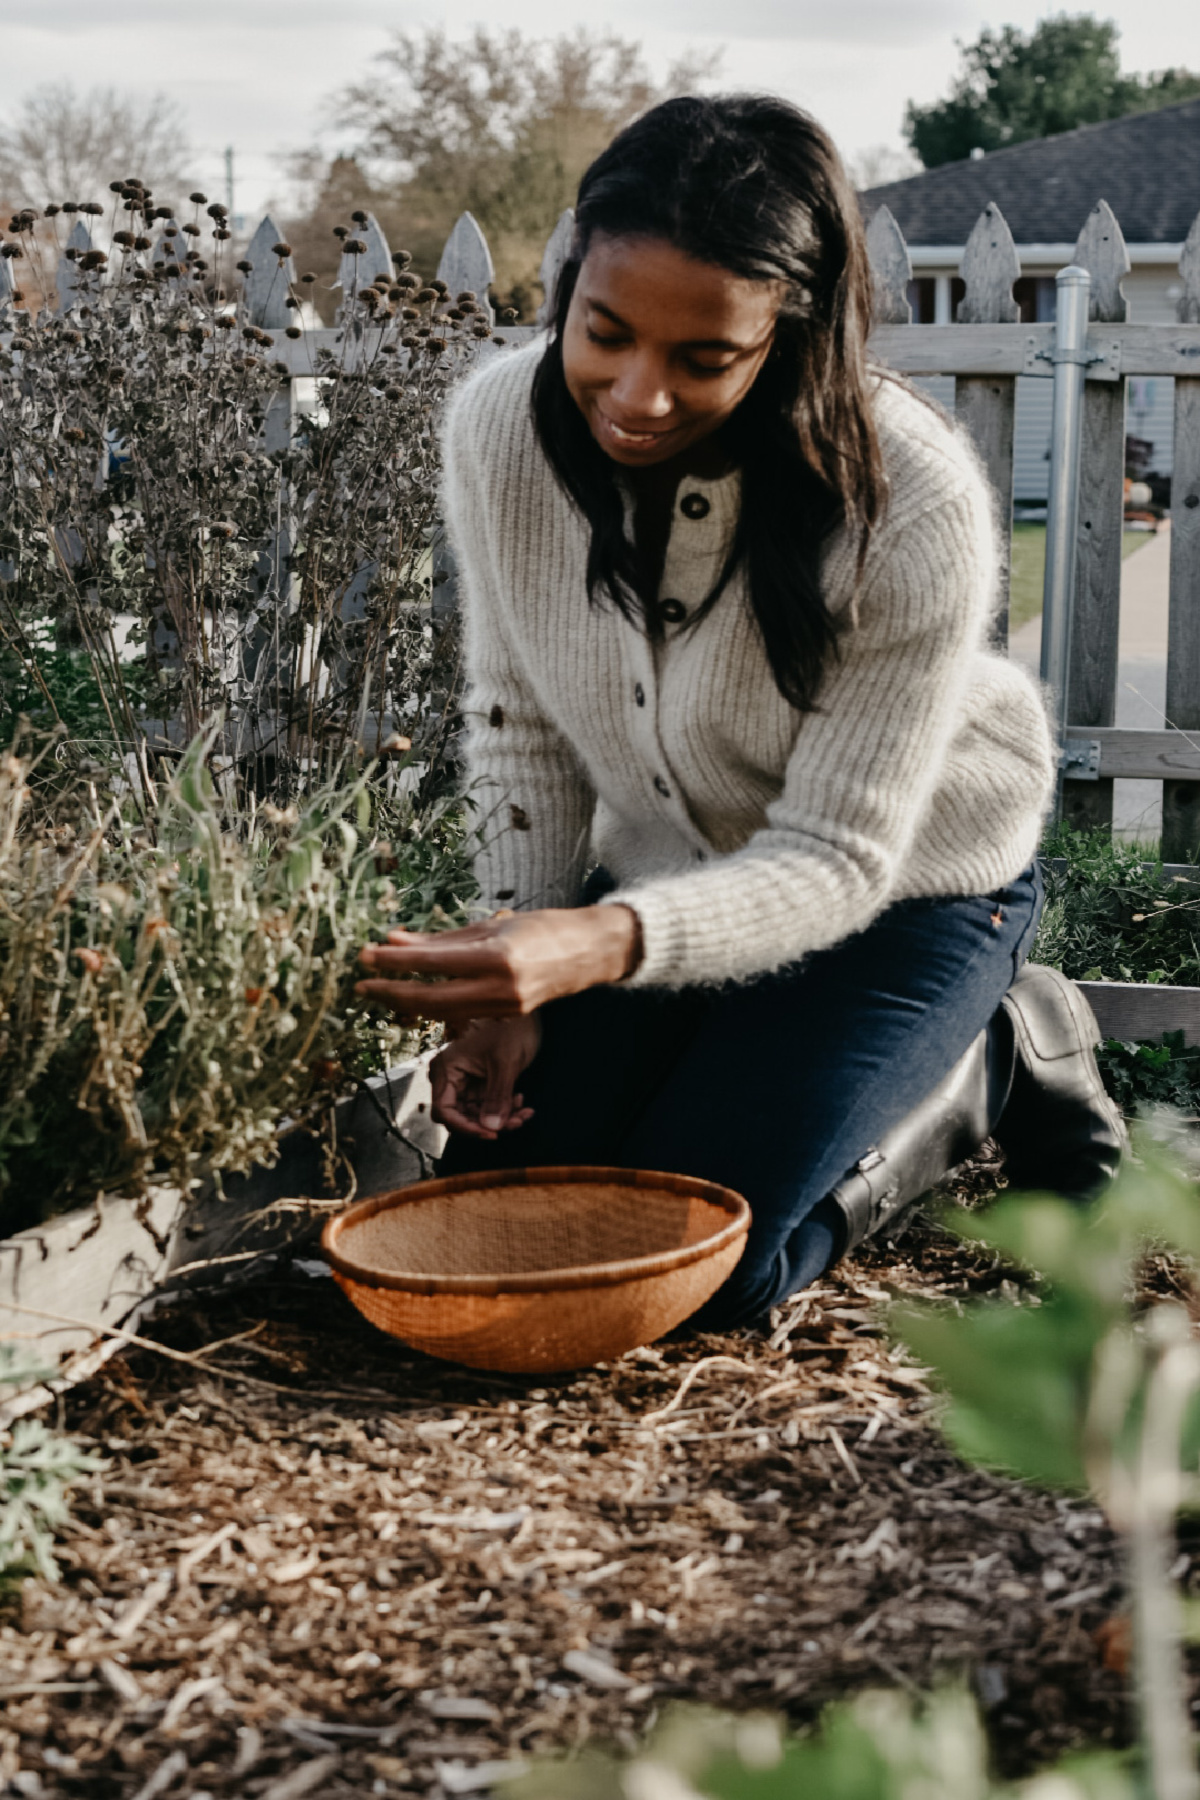 herbalist connecting with an herb in her garden